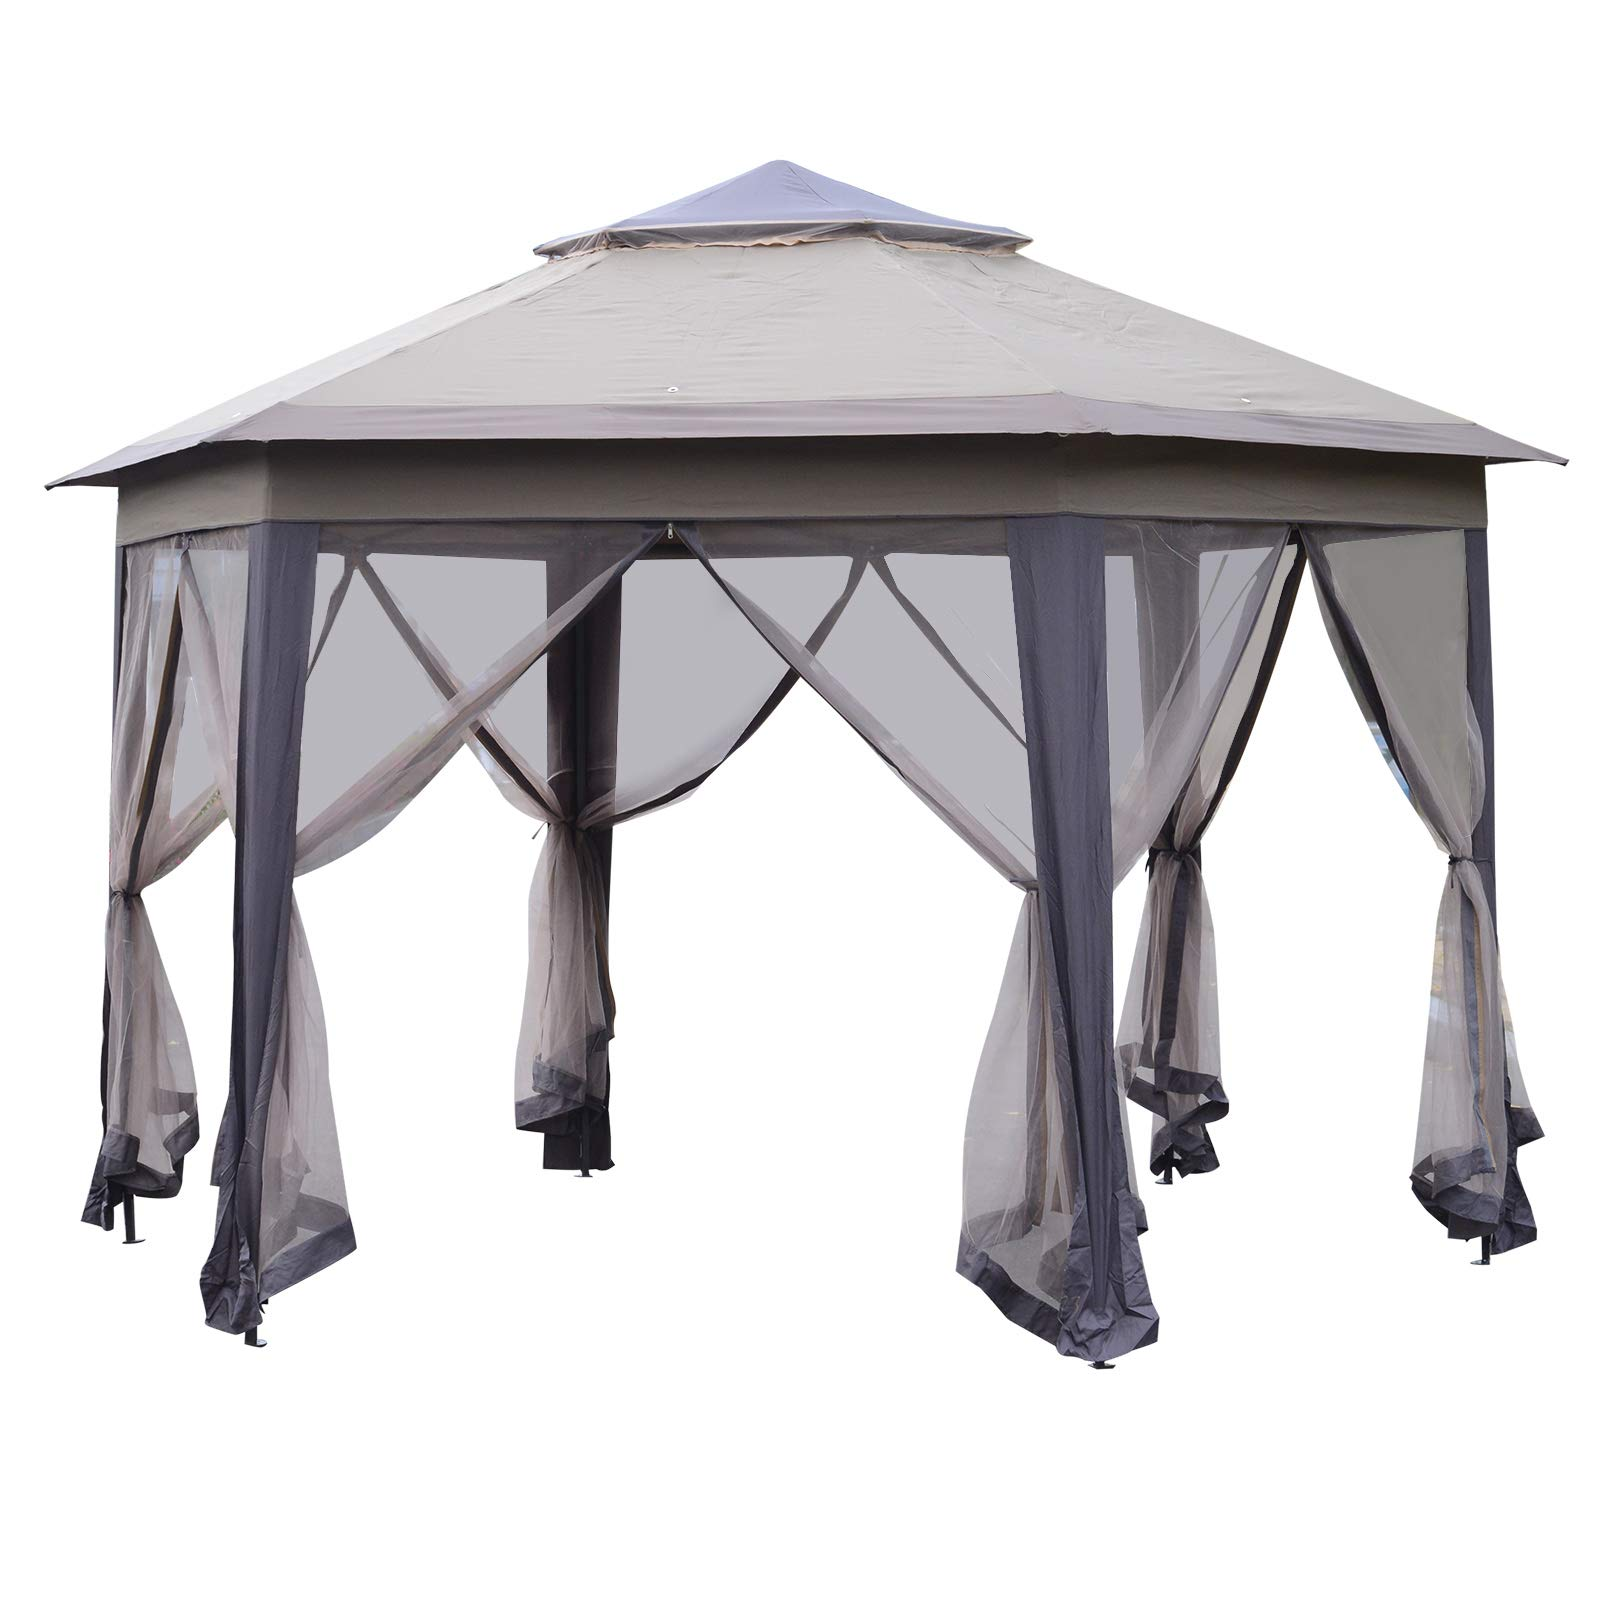 Outsunny 12' Steel Fabric Hexagonal Pop Up Patio Gazebo with Mesh Sidewalls - Coffee and Beige